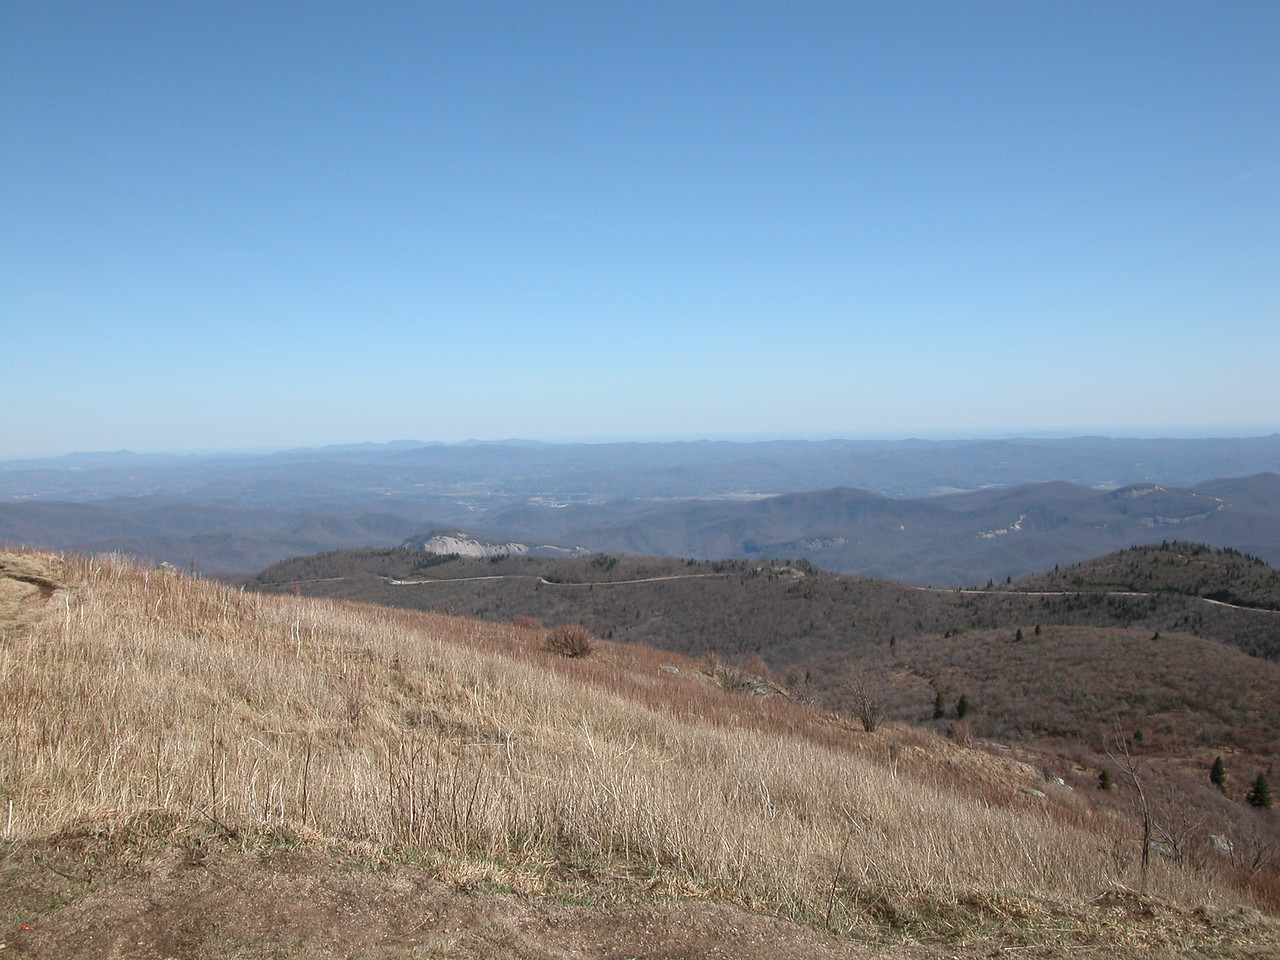 Looking Glass Rock and the Blue Ridge Parkway from the summit of Black Balsam Knob.